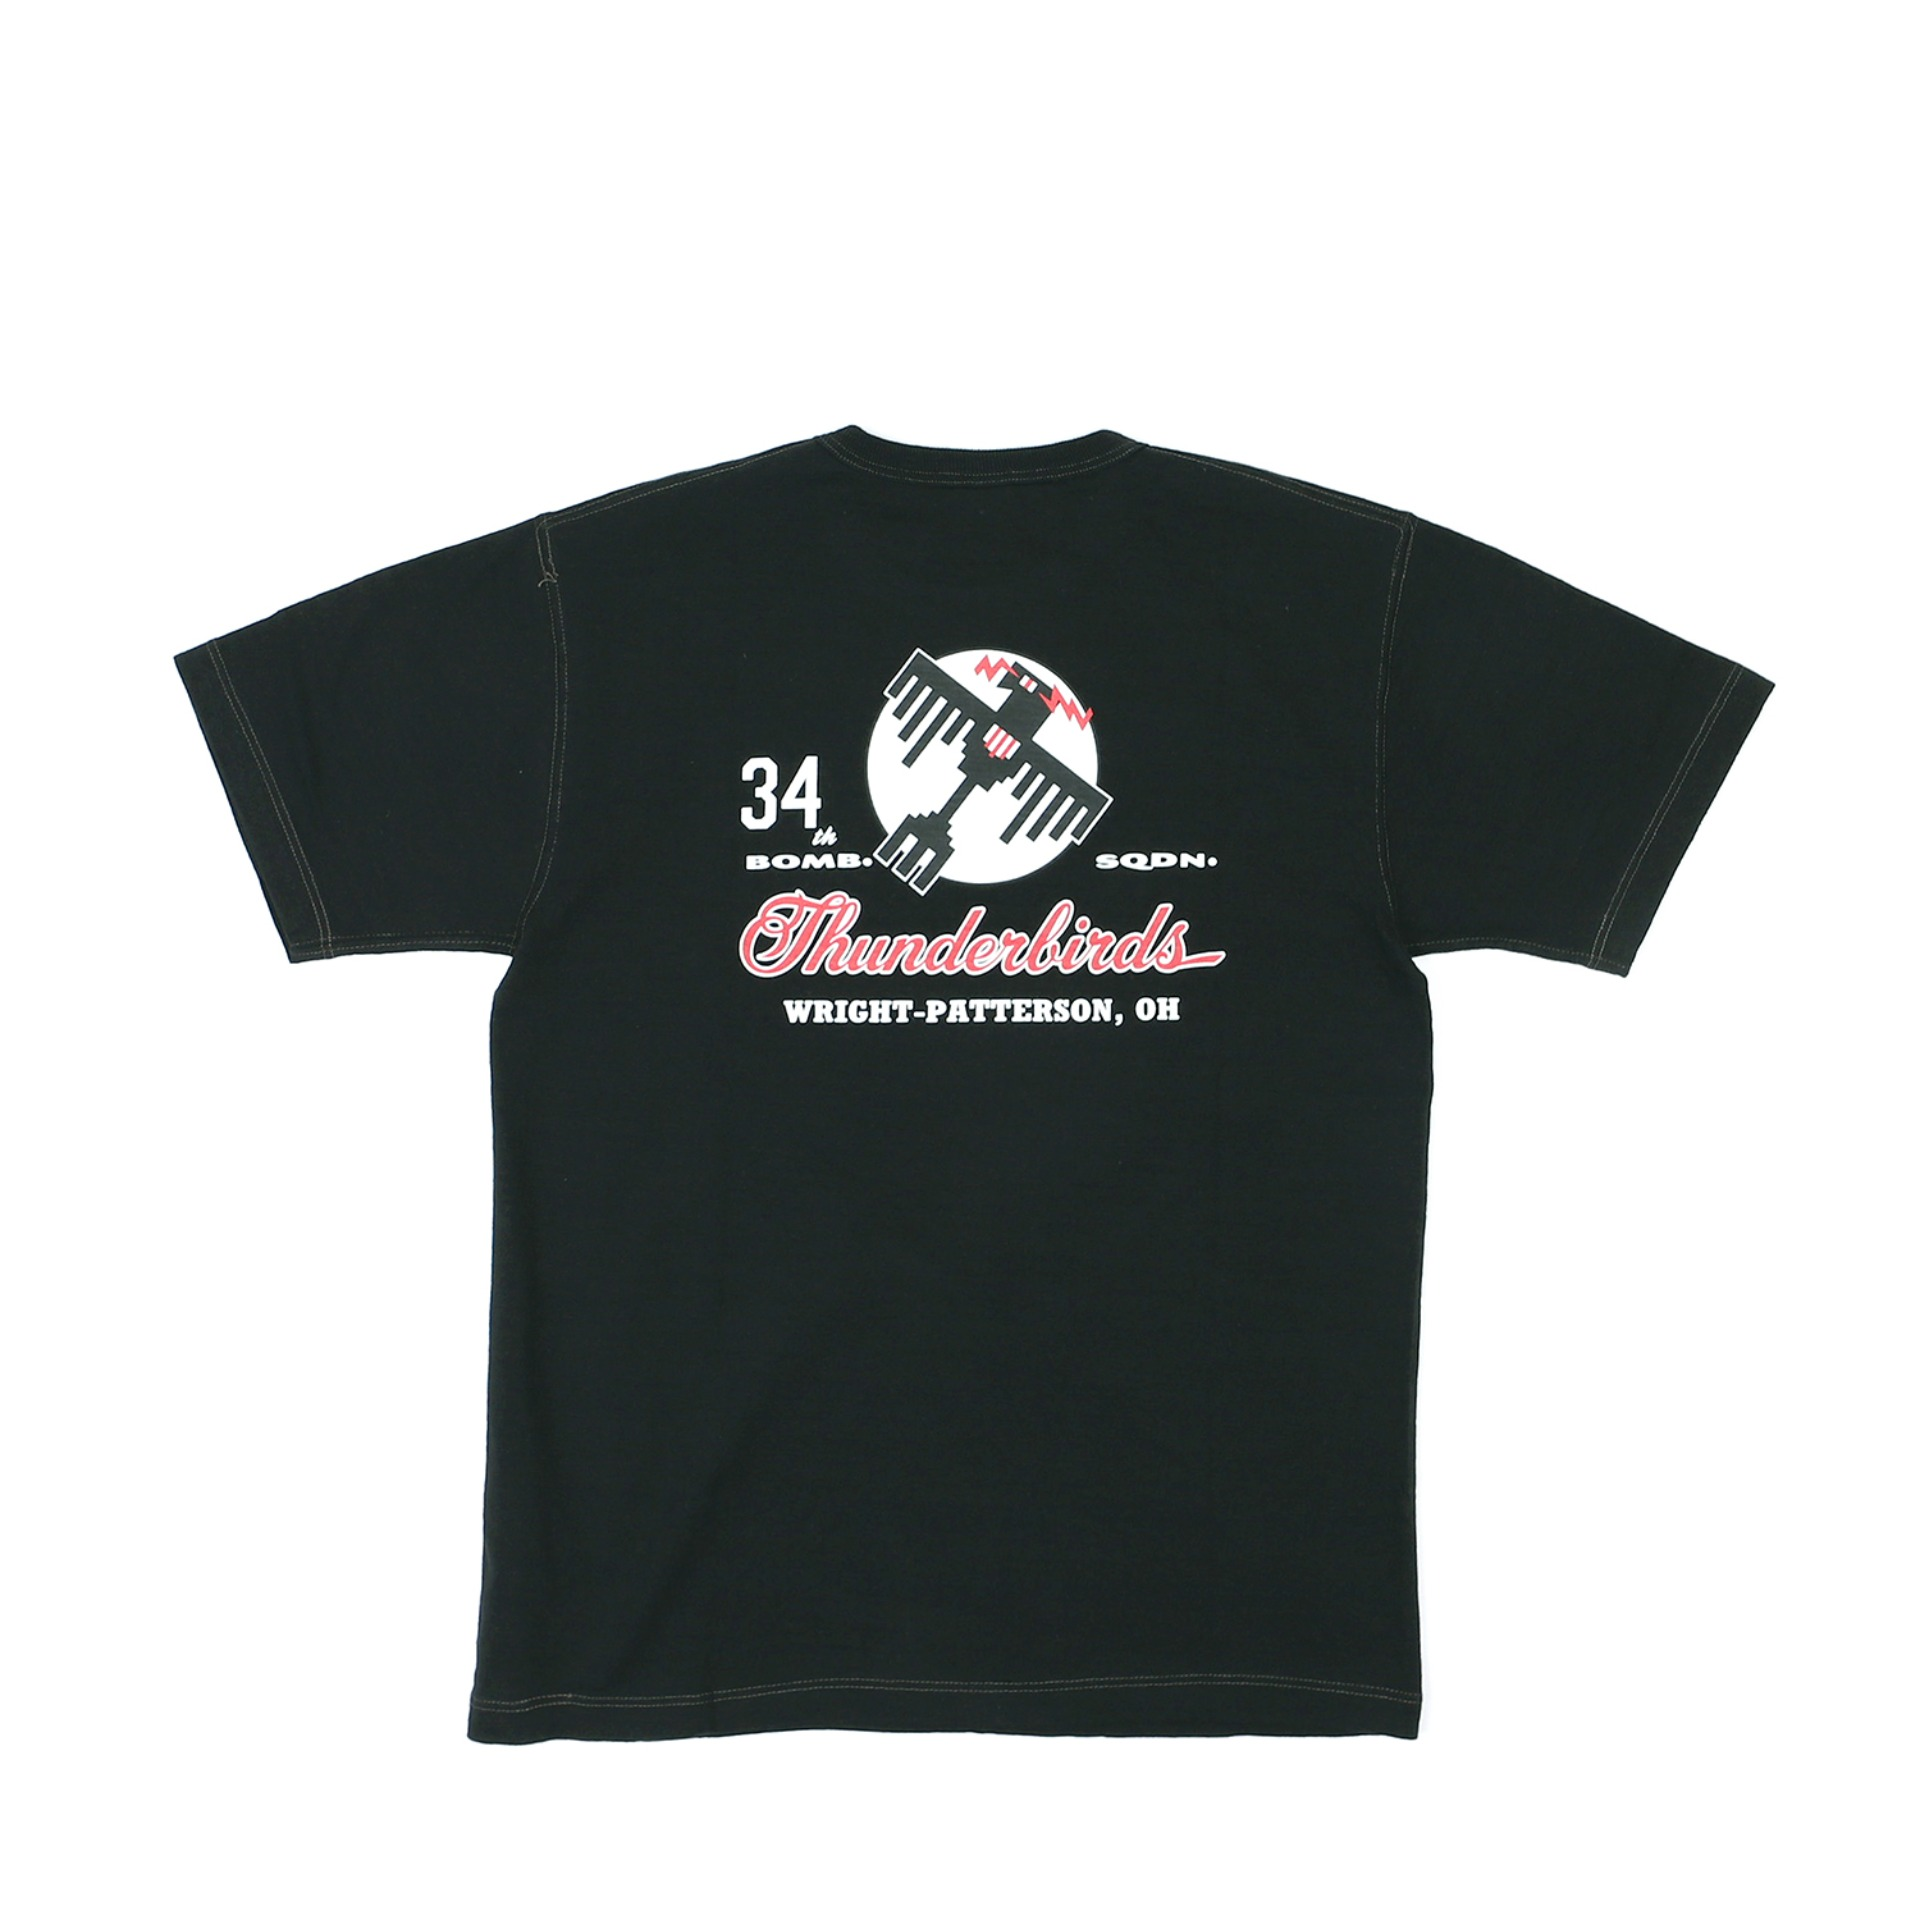 "LOOPWHEEL T-SHIRT ""34th BOMB.SQDN. THUNDER BIRD"" (Black)"